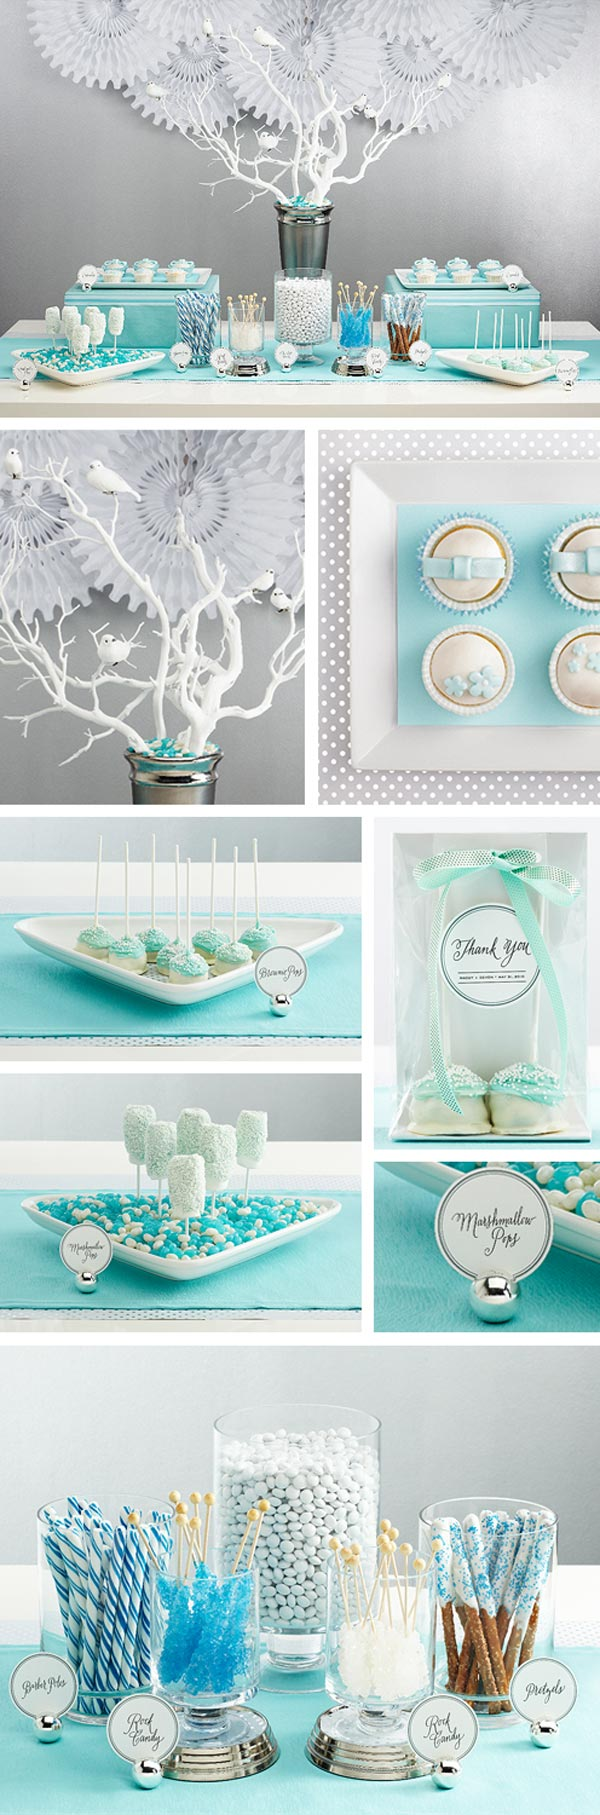 Baby shower decor ideas arhitektura for Baby boy mural ideas